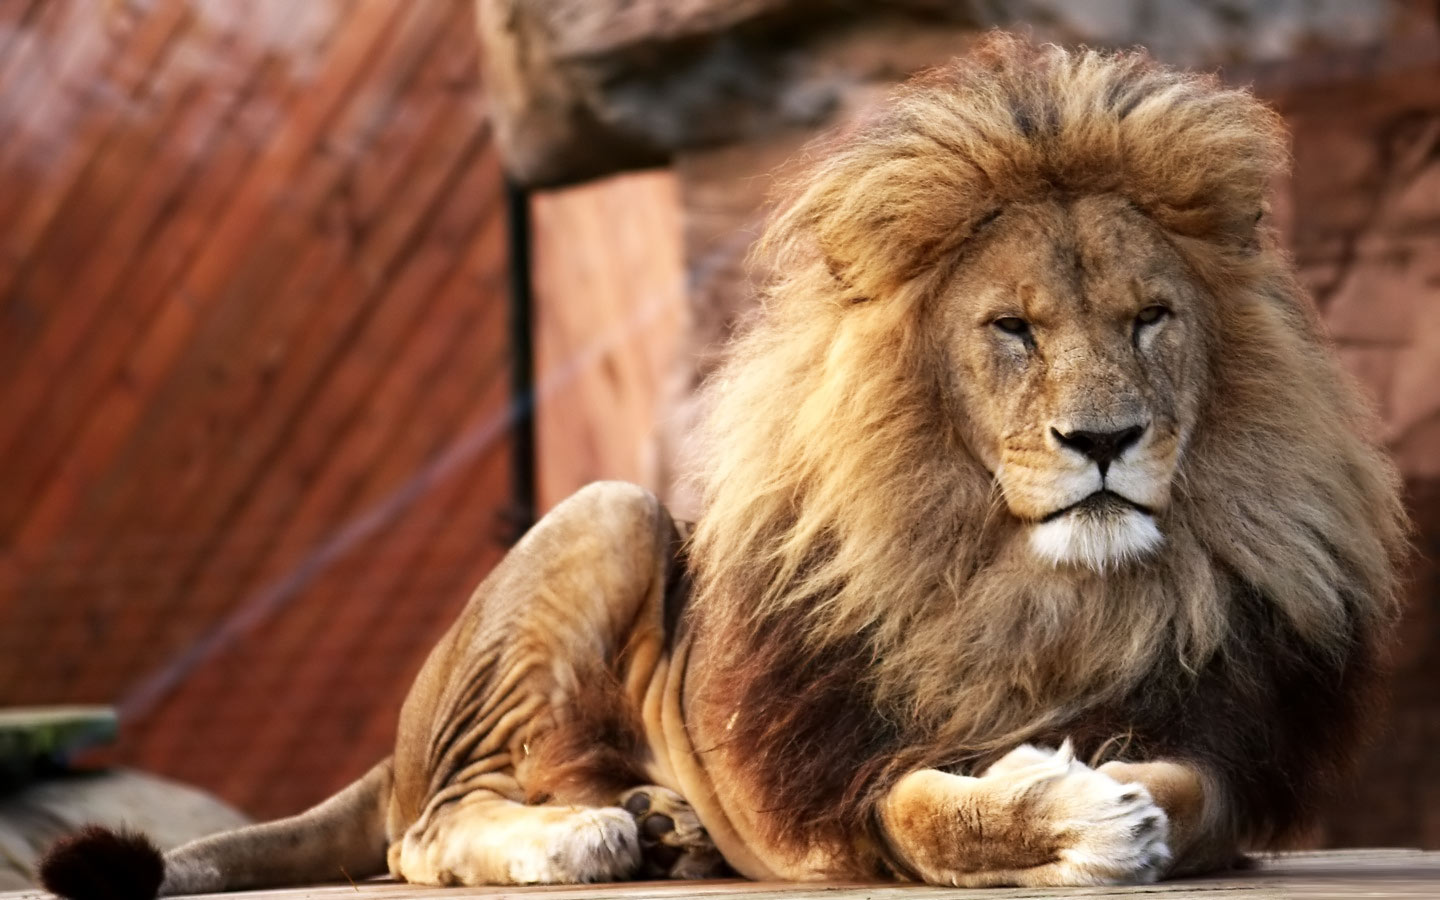 Lion Wallpaper Desktop 10655 Hd Wallpapers in Animals   Imagescicom 1440x900